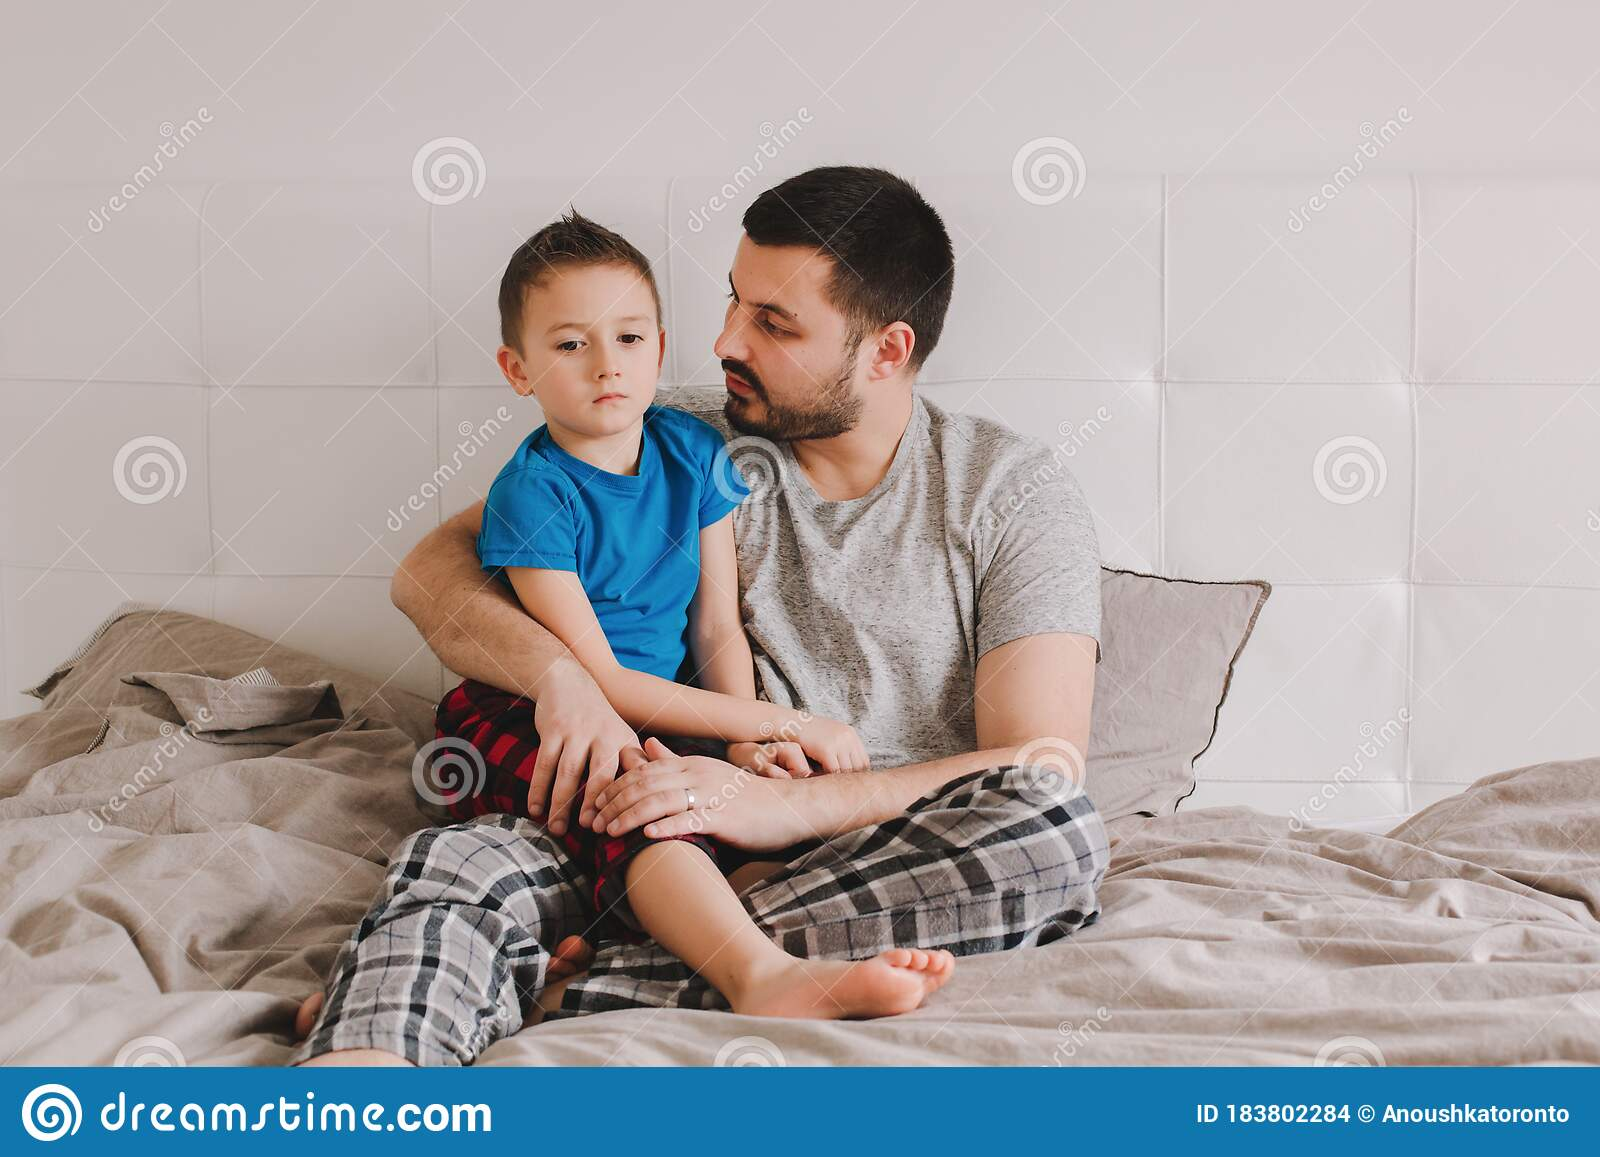 178 Parent Child Serious Talk Photos Free Royalty Free Stock Photos From Dreamstime